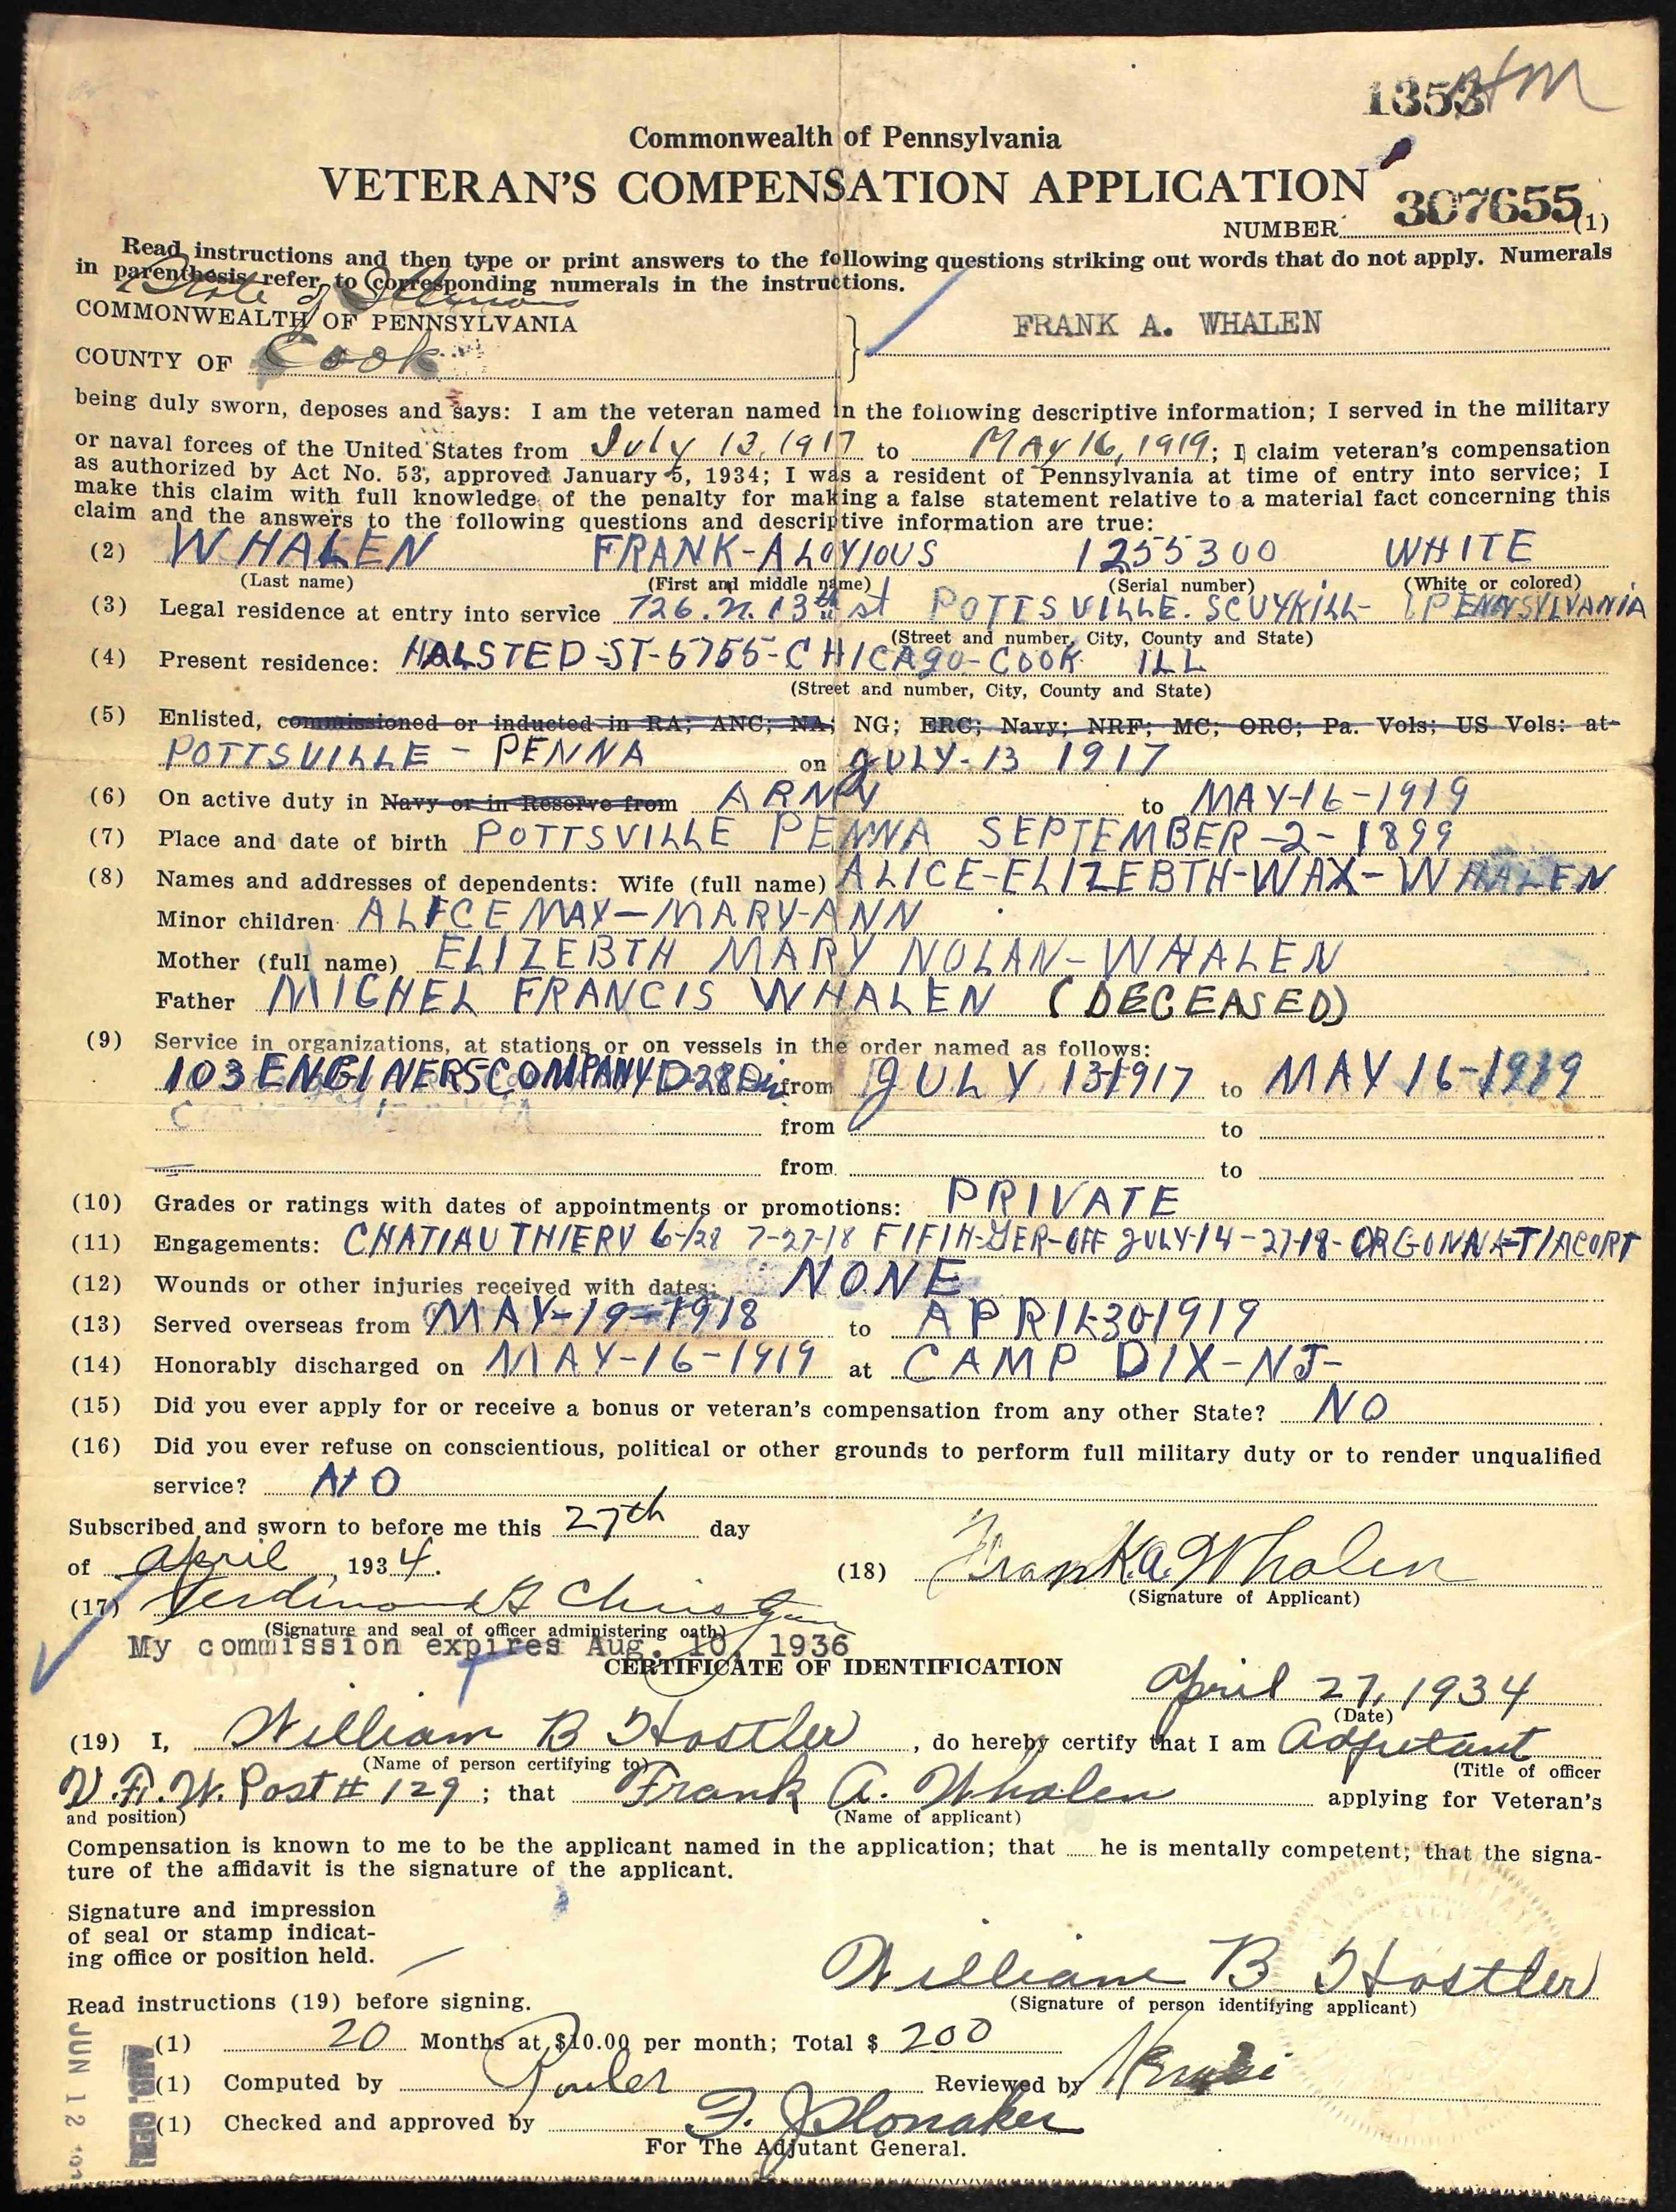 Frank Whalen Bonus Army Application